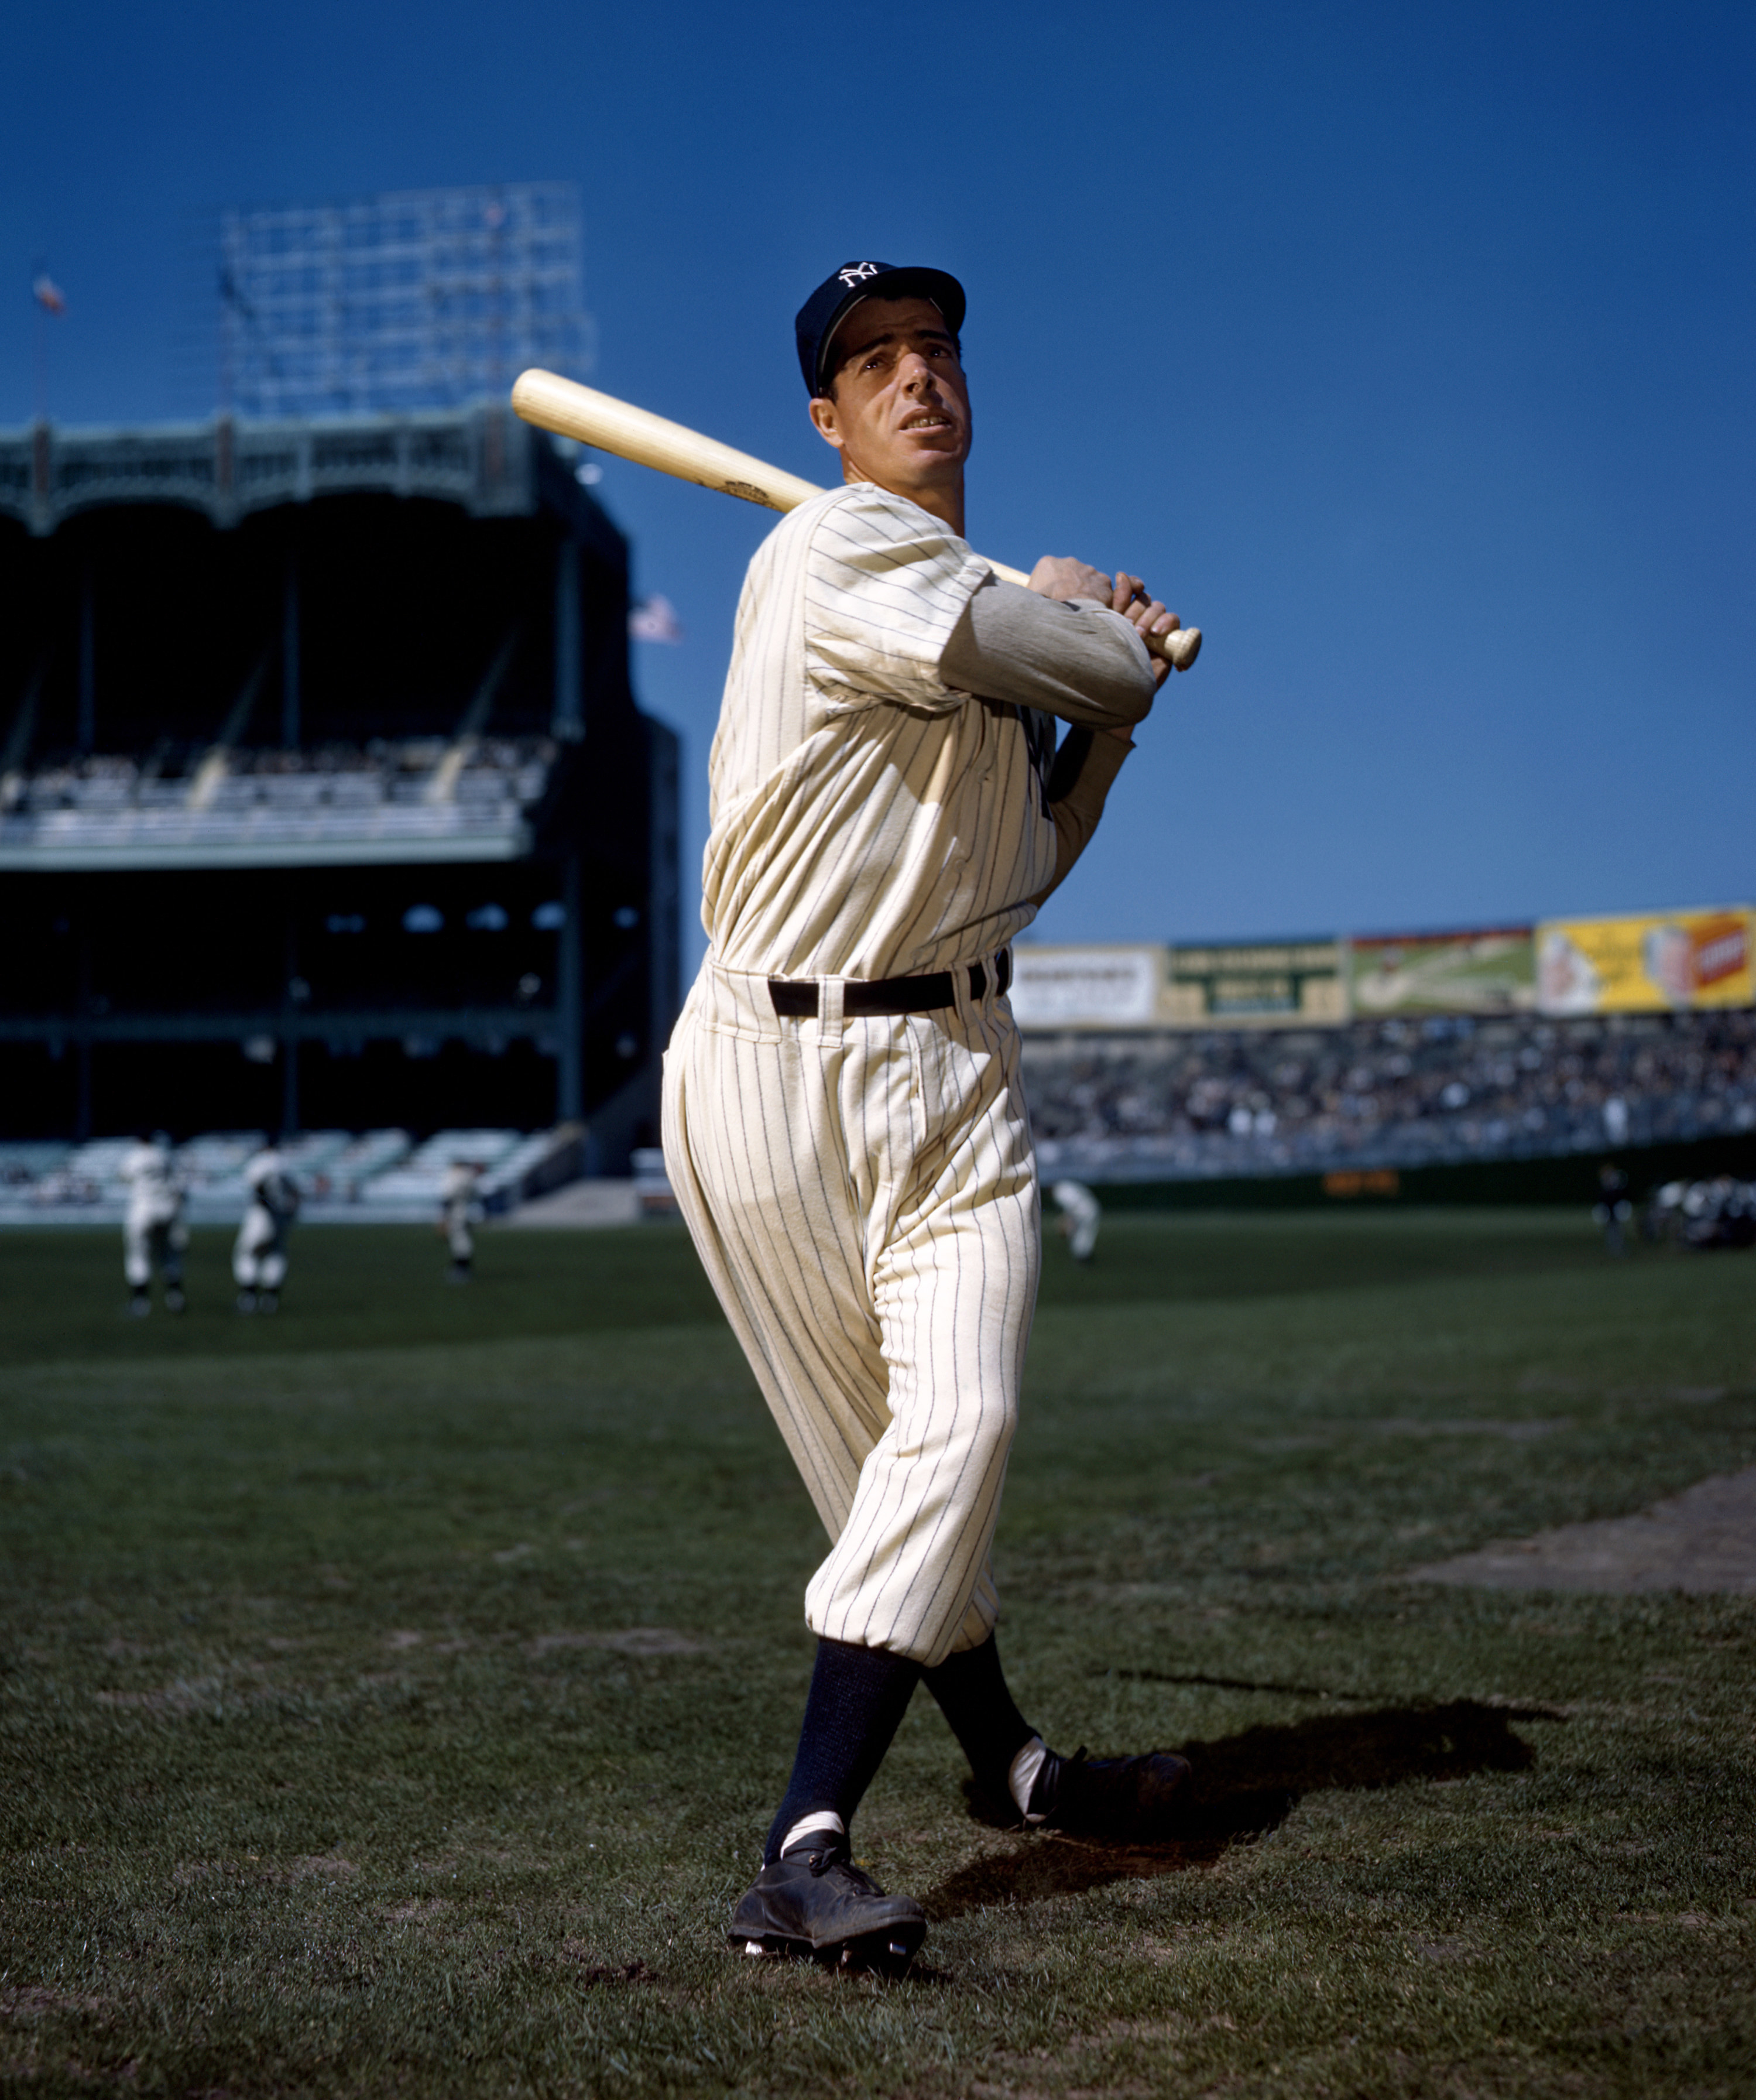 Joe Dimaggio taking a practice swing for the camera